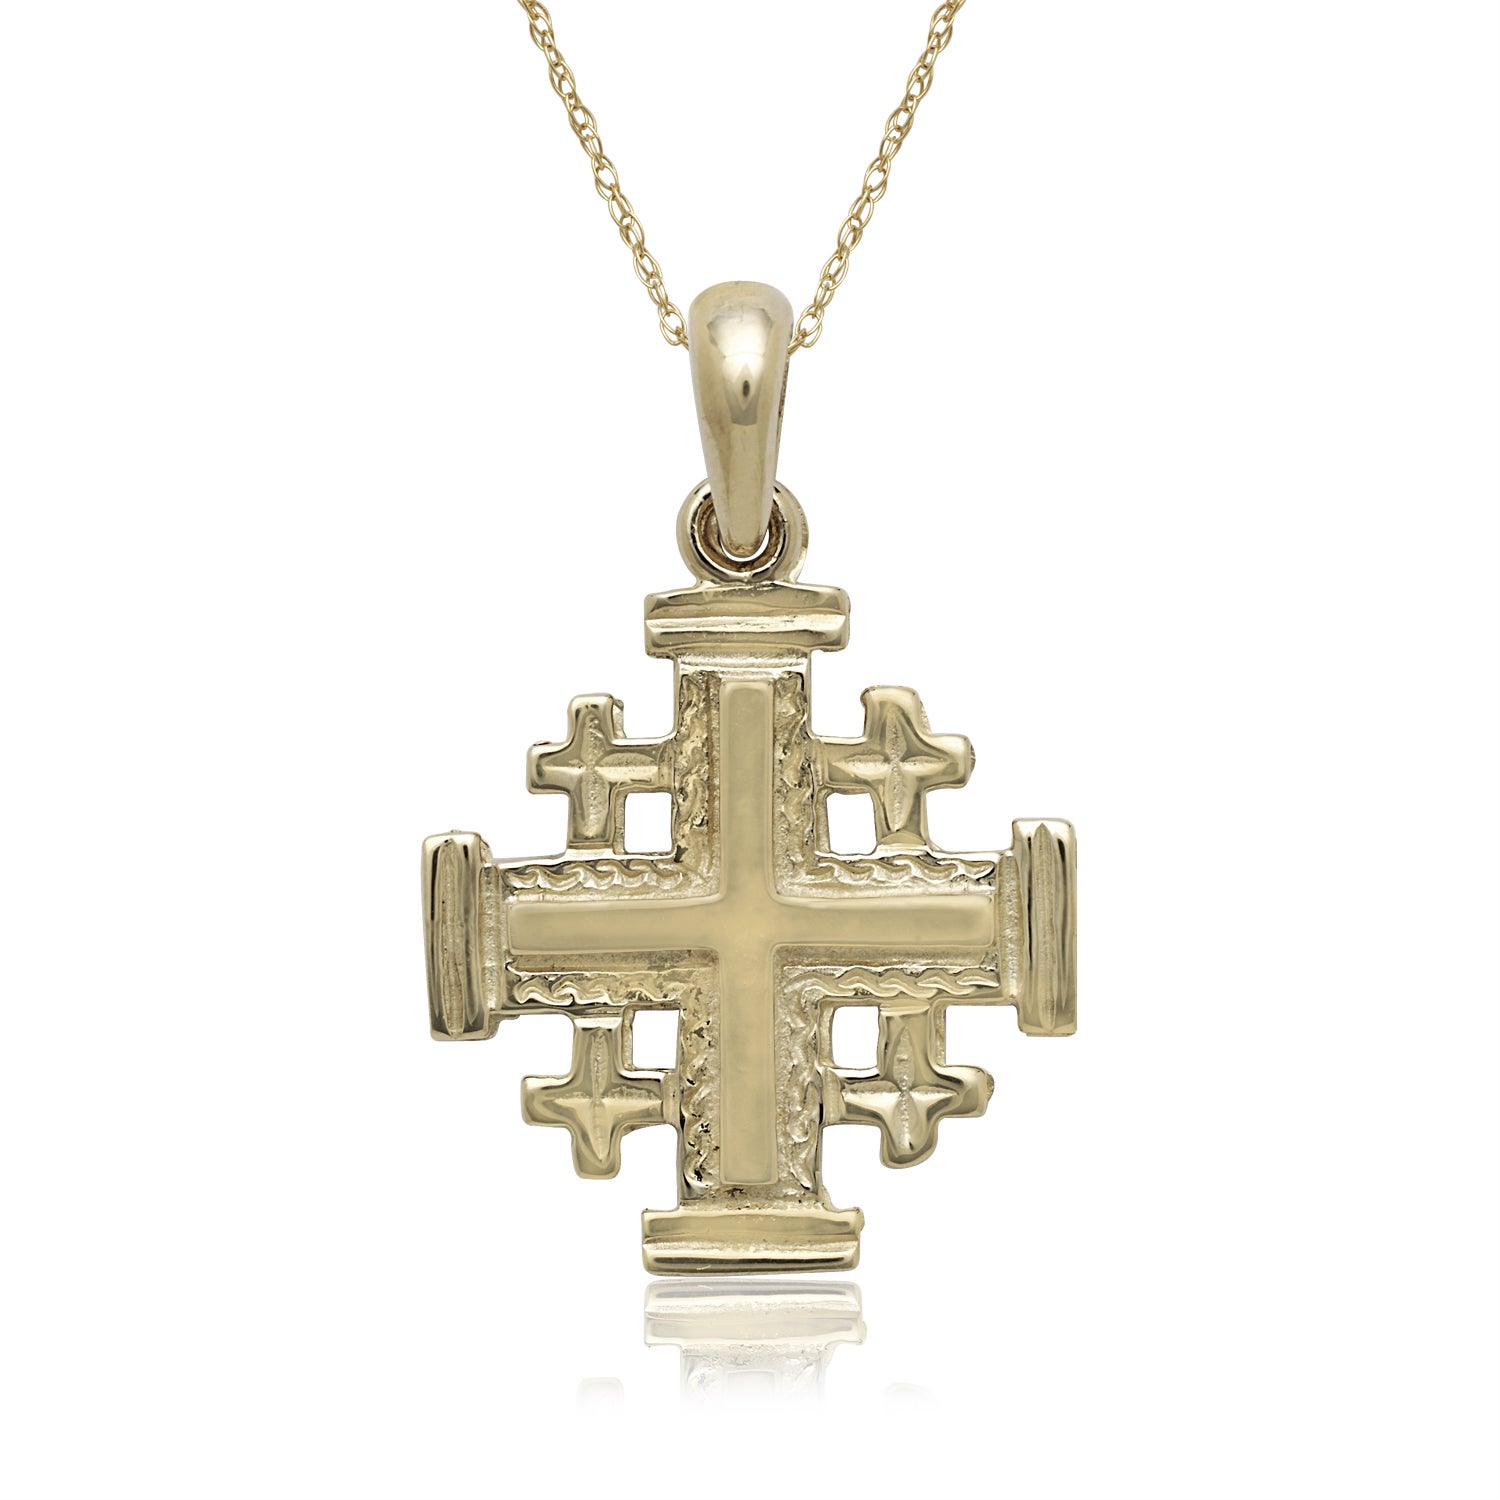 Unique Design 18K White Gold GF Cross Pendant Necklace With SWAROVSKI Crystal